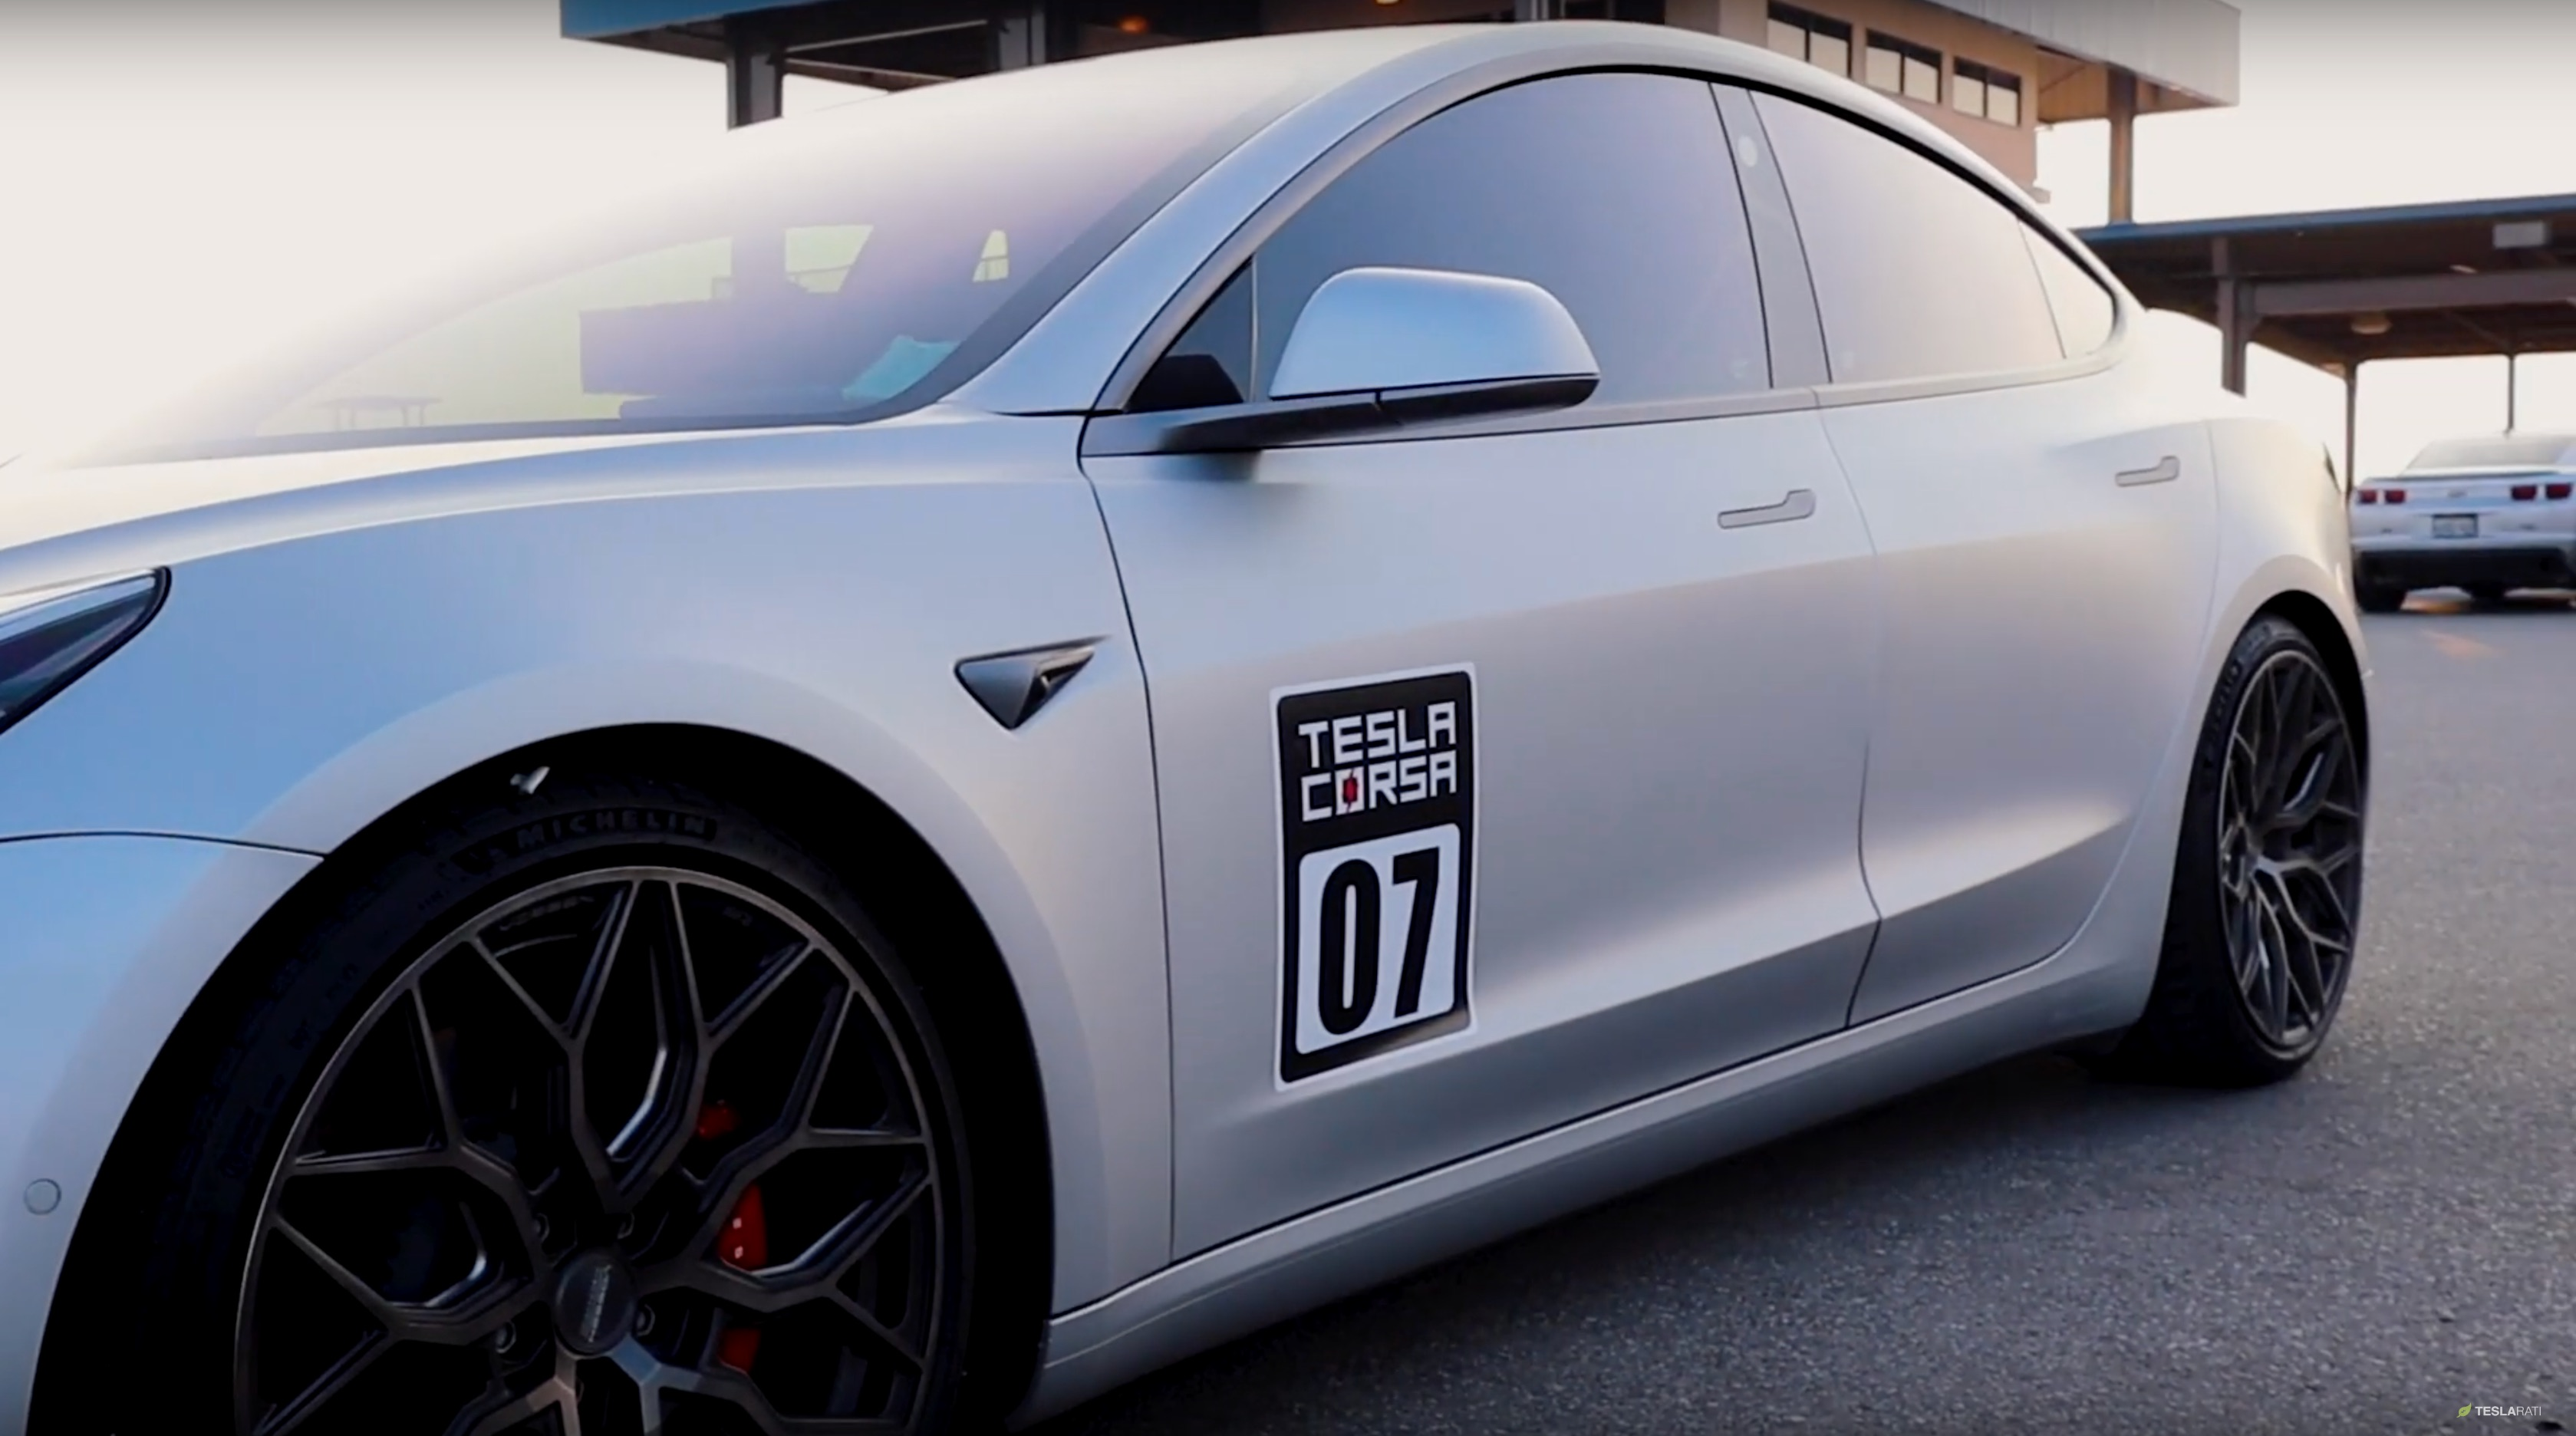 tesla-corsa-model-3-race-track